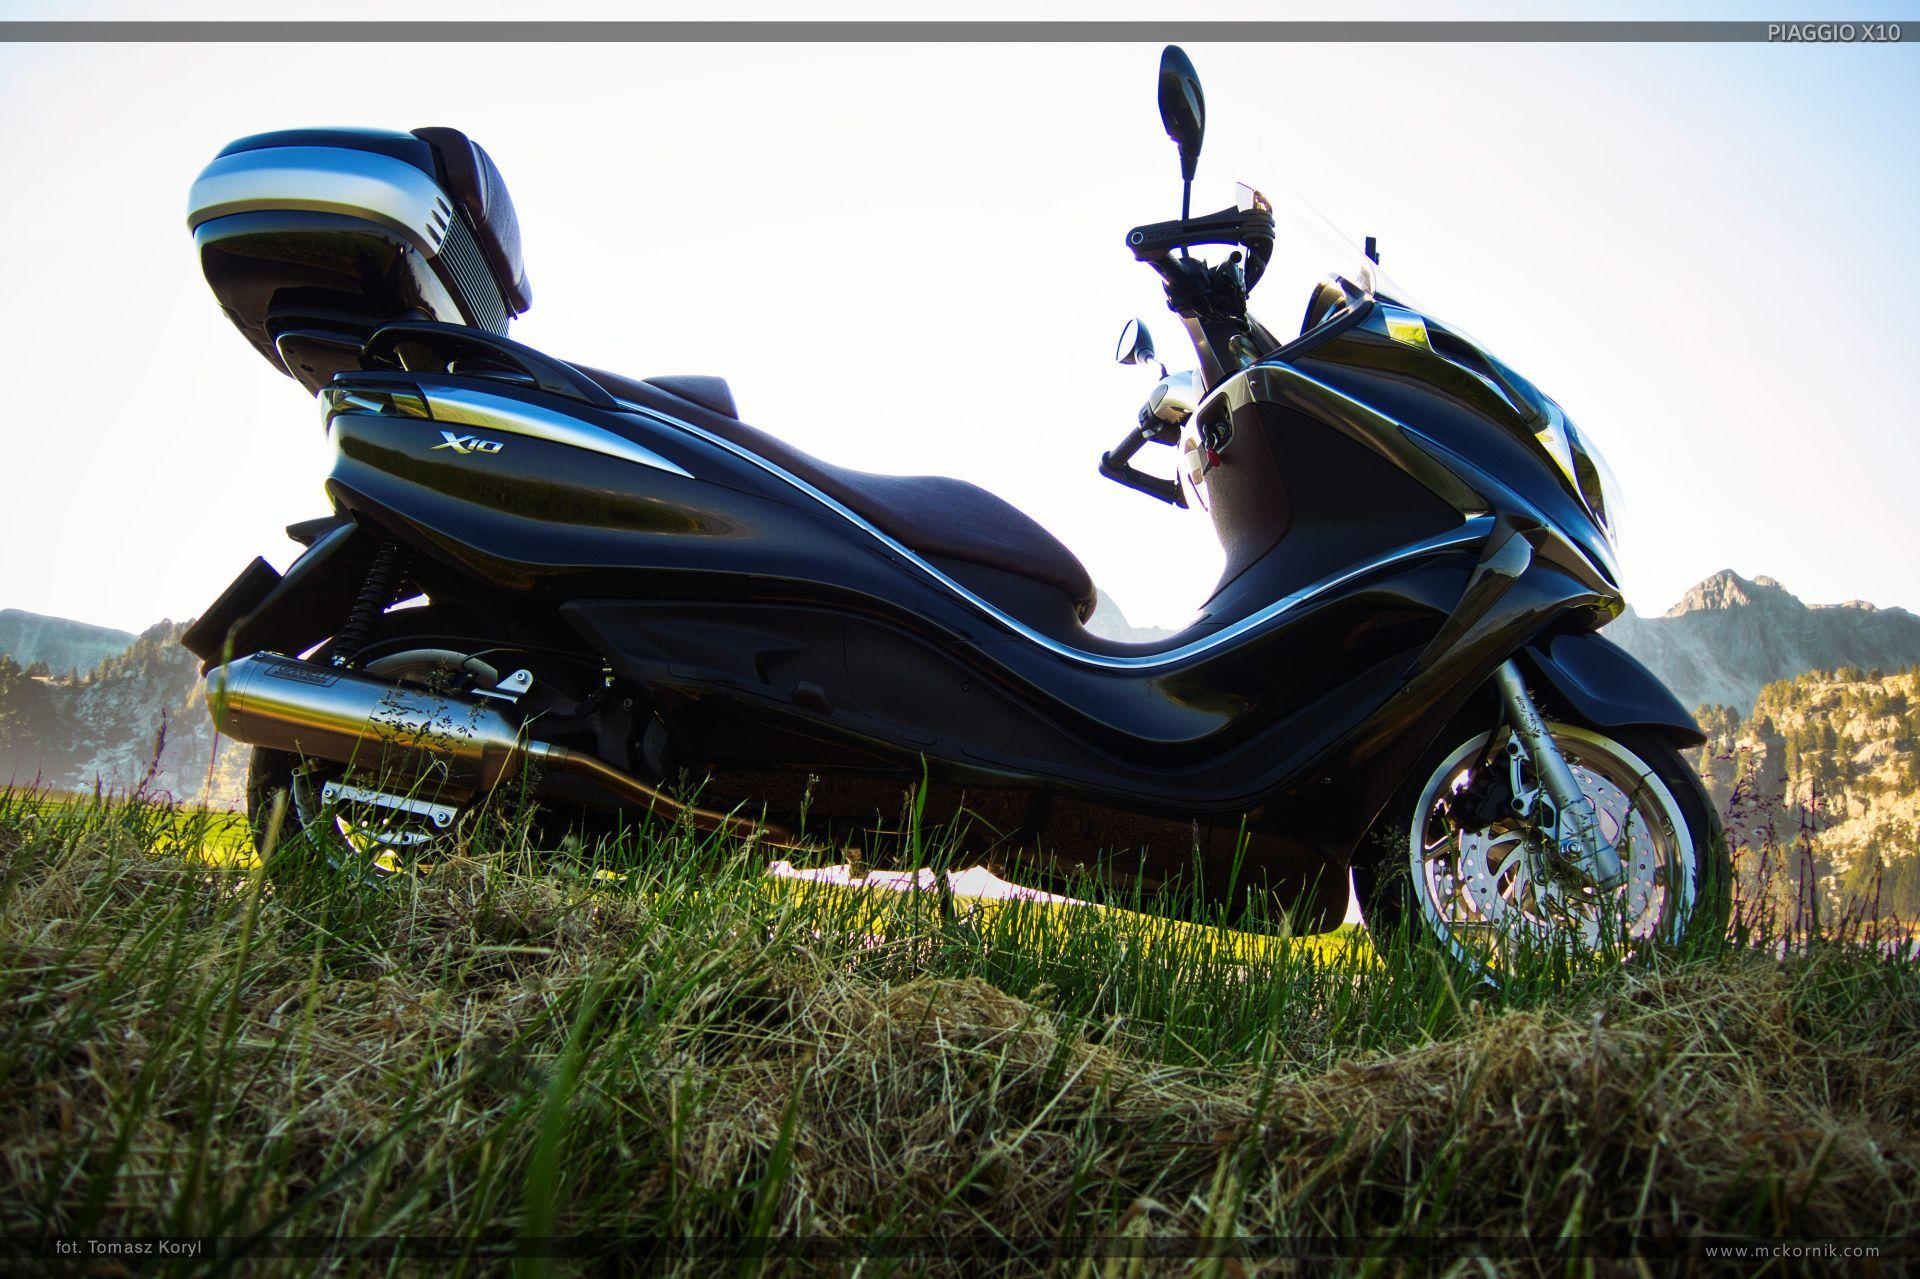 Scooter piaggio x10 350 motorcycle photos, wallpapers, review by mckornik.com